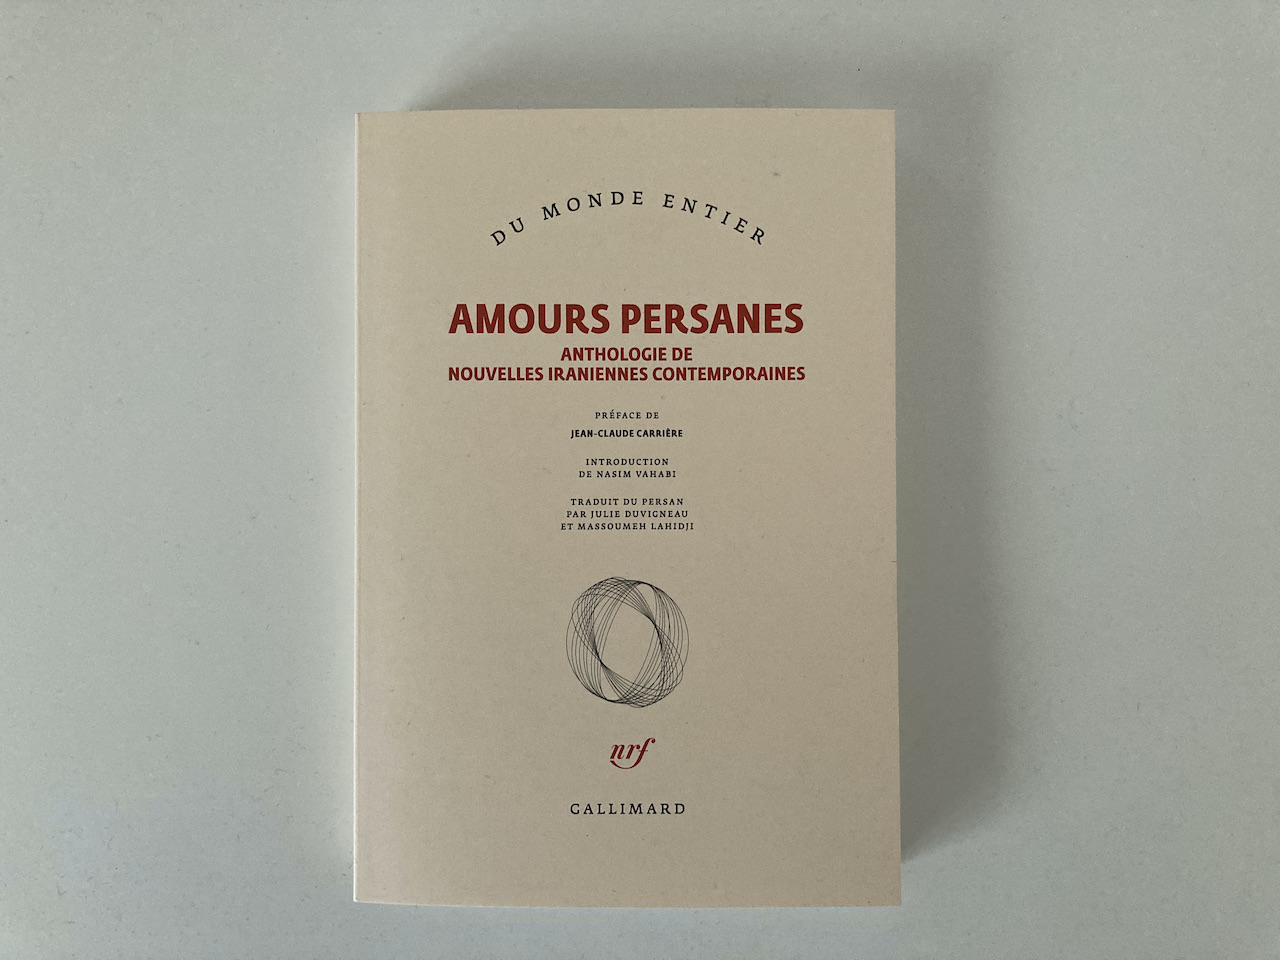 Lectures transversales 8 : Amours persanes